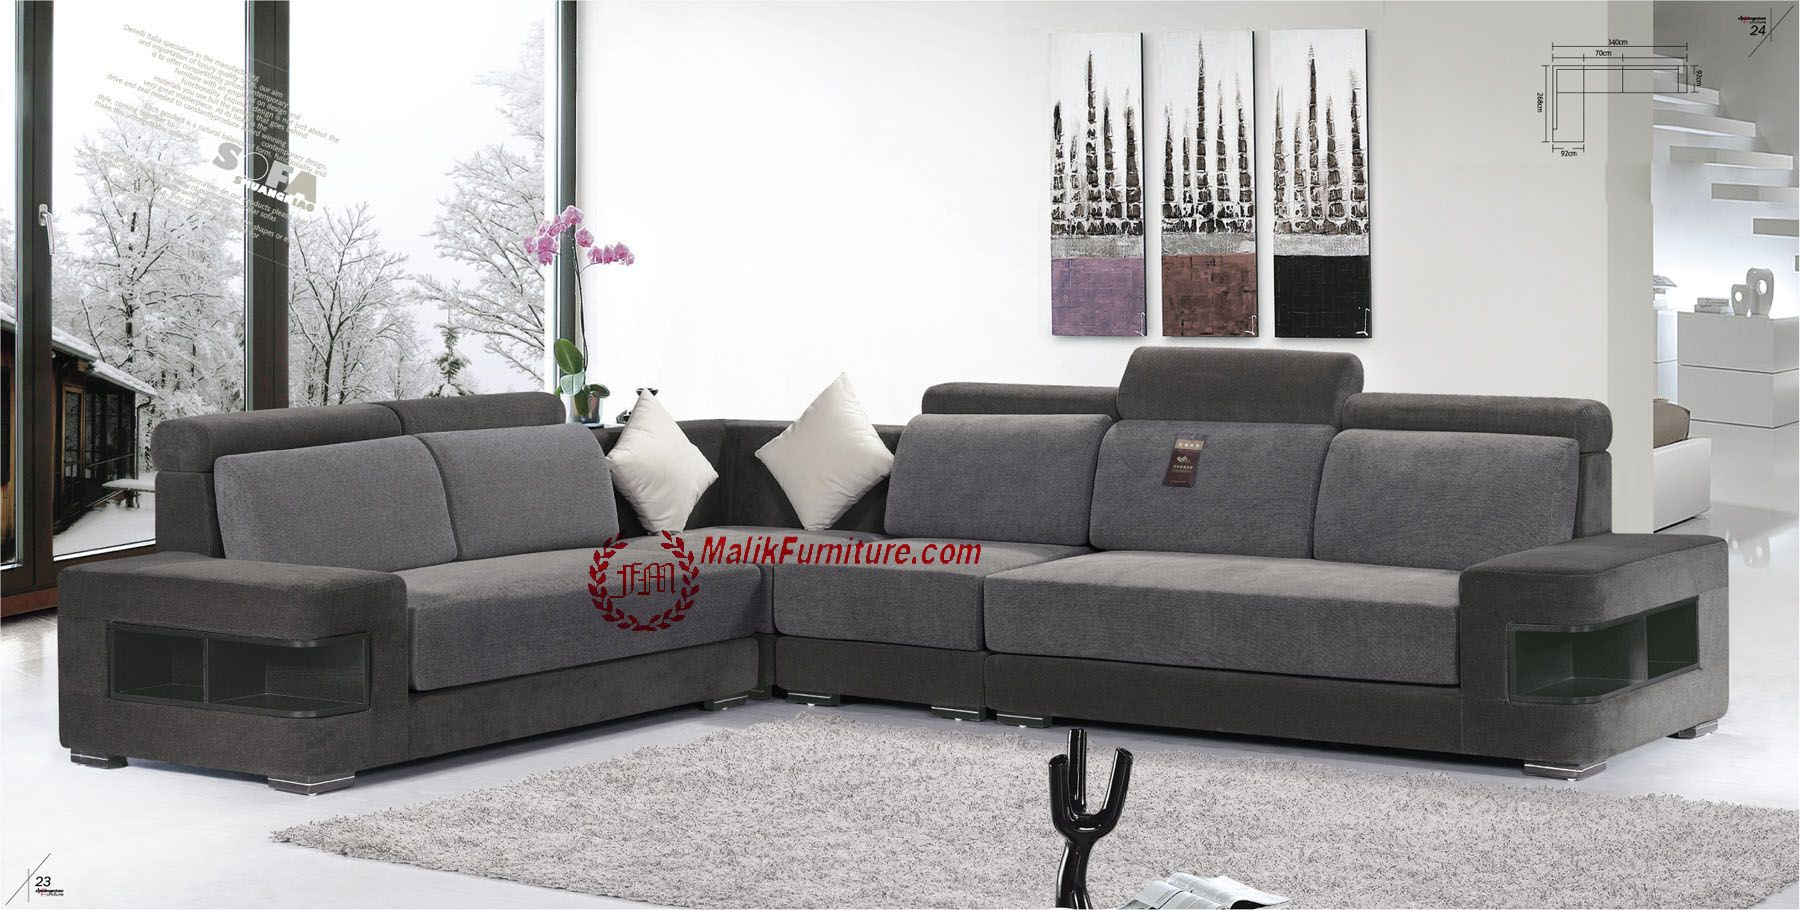 Sofa Corner Sofa Modern Design Corner Malik Furniture House Of Modern Furniture Sofa Design Sofa Set Designs Living Room Sofa